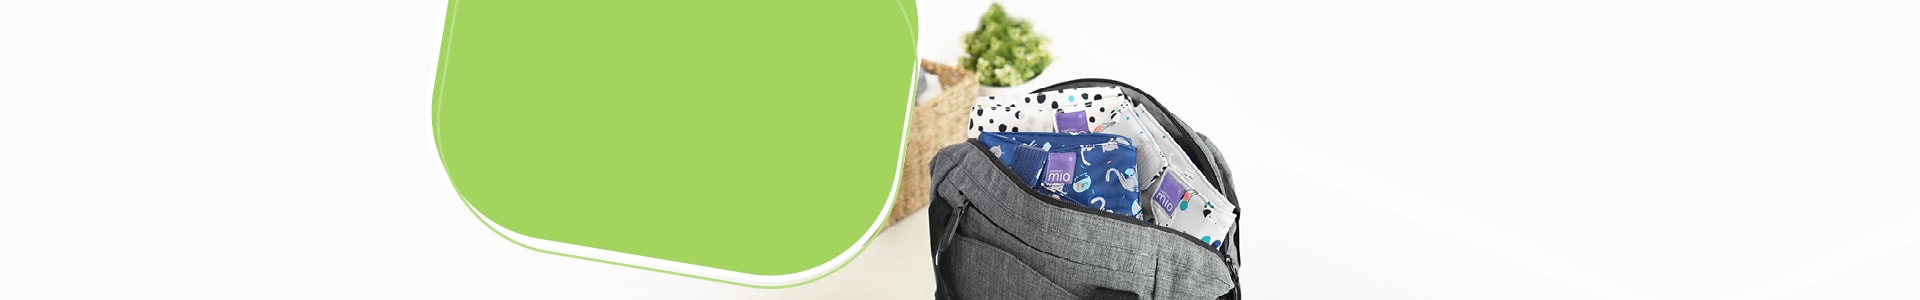 Why choose us page banner showing diaper bag with diapers in